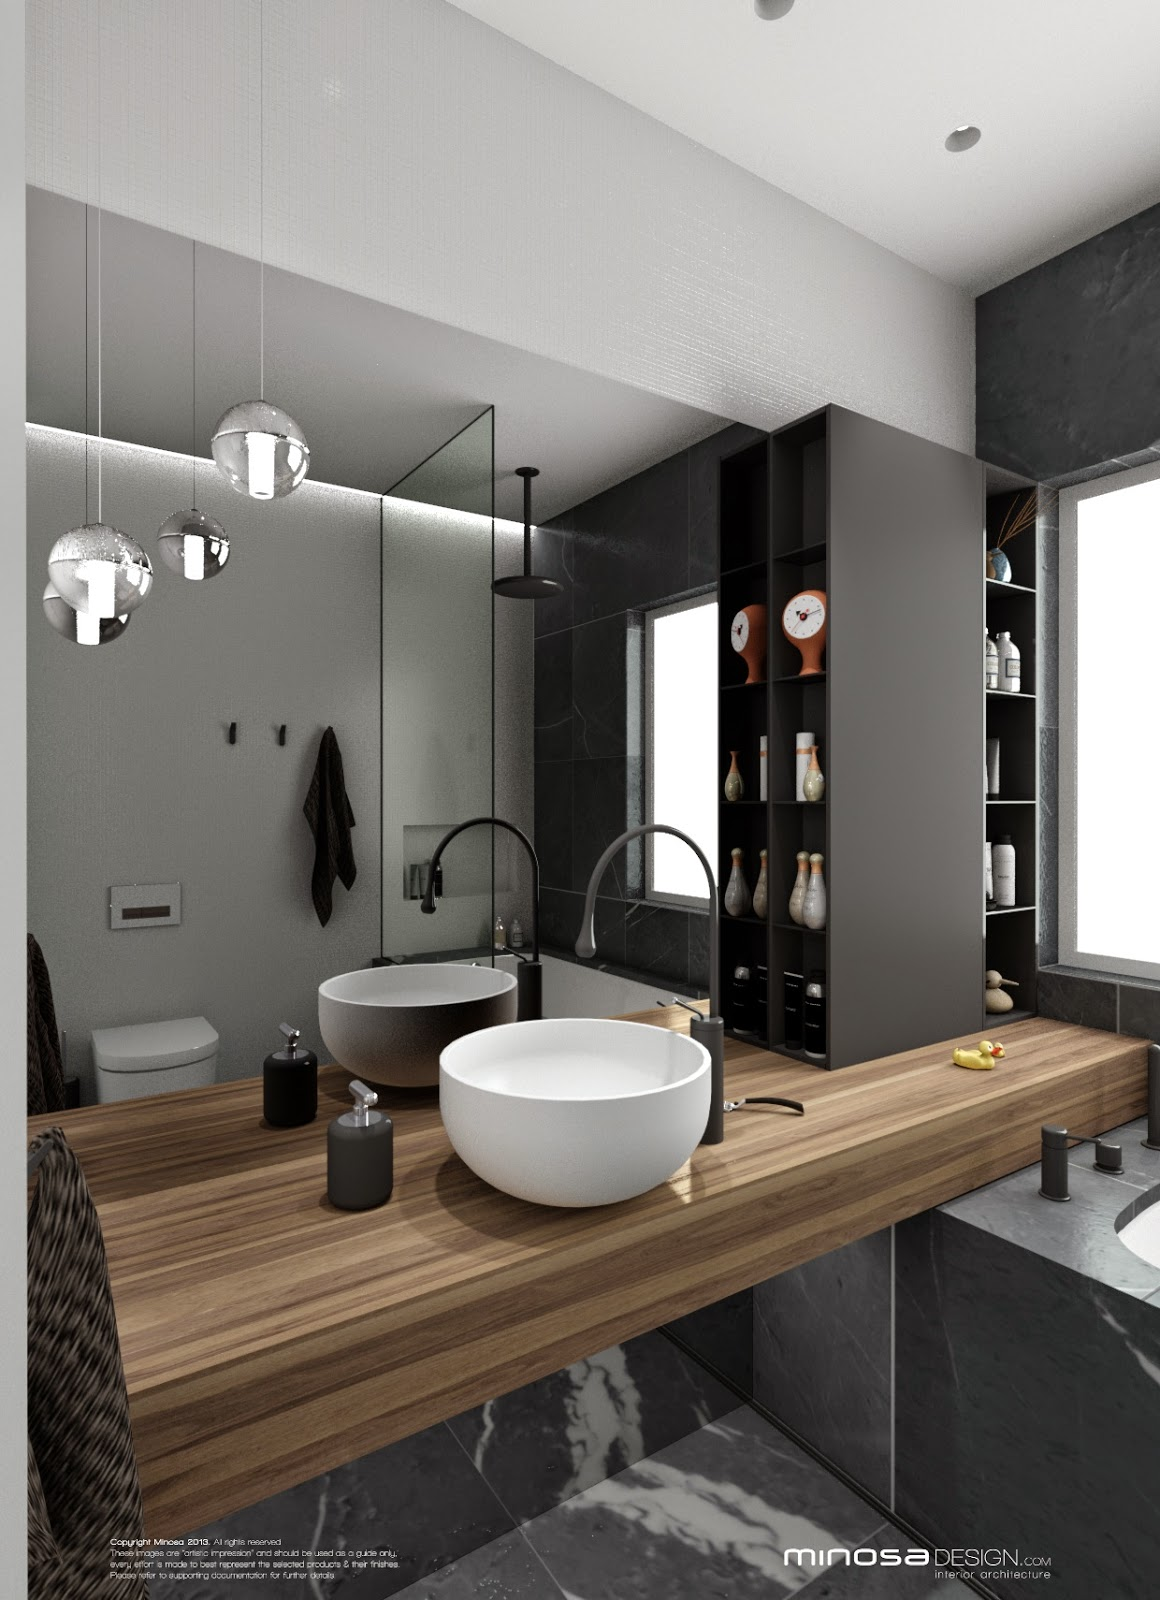 Minosa bathroom design small space feels large for Bathroom space ideas